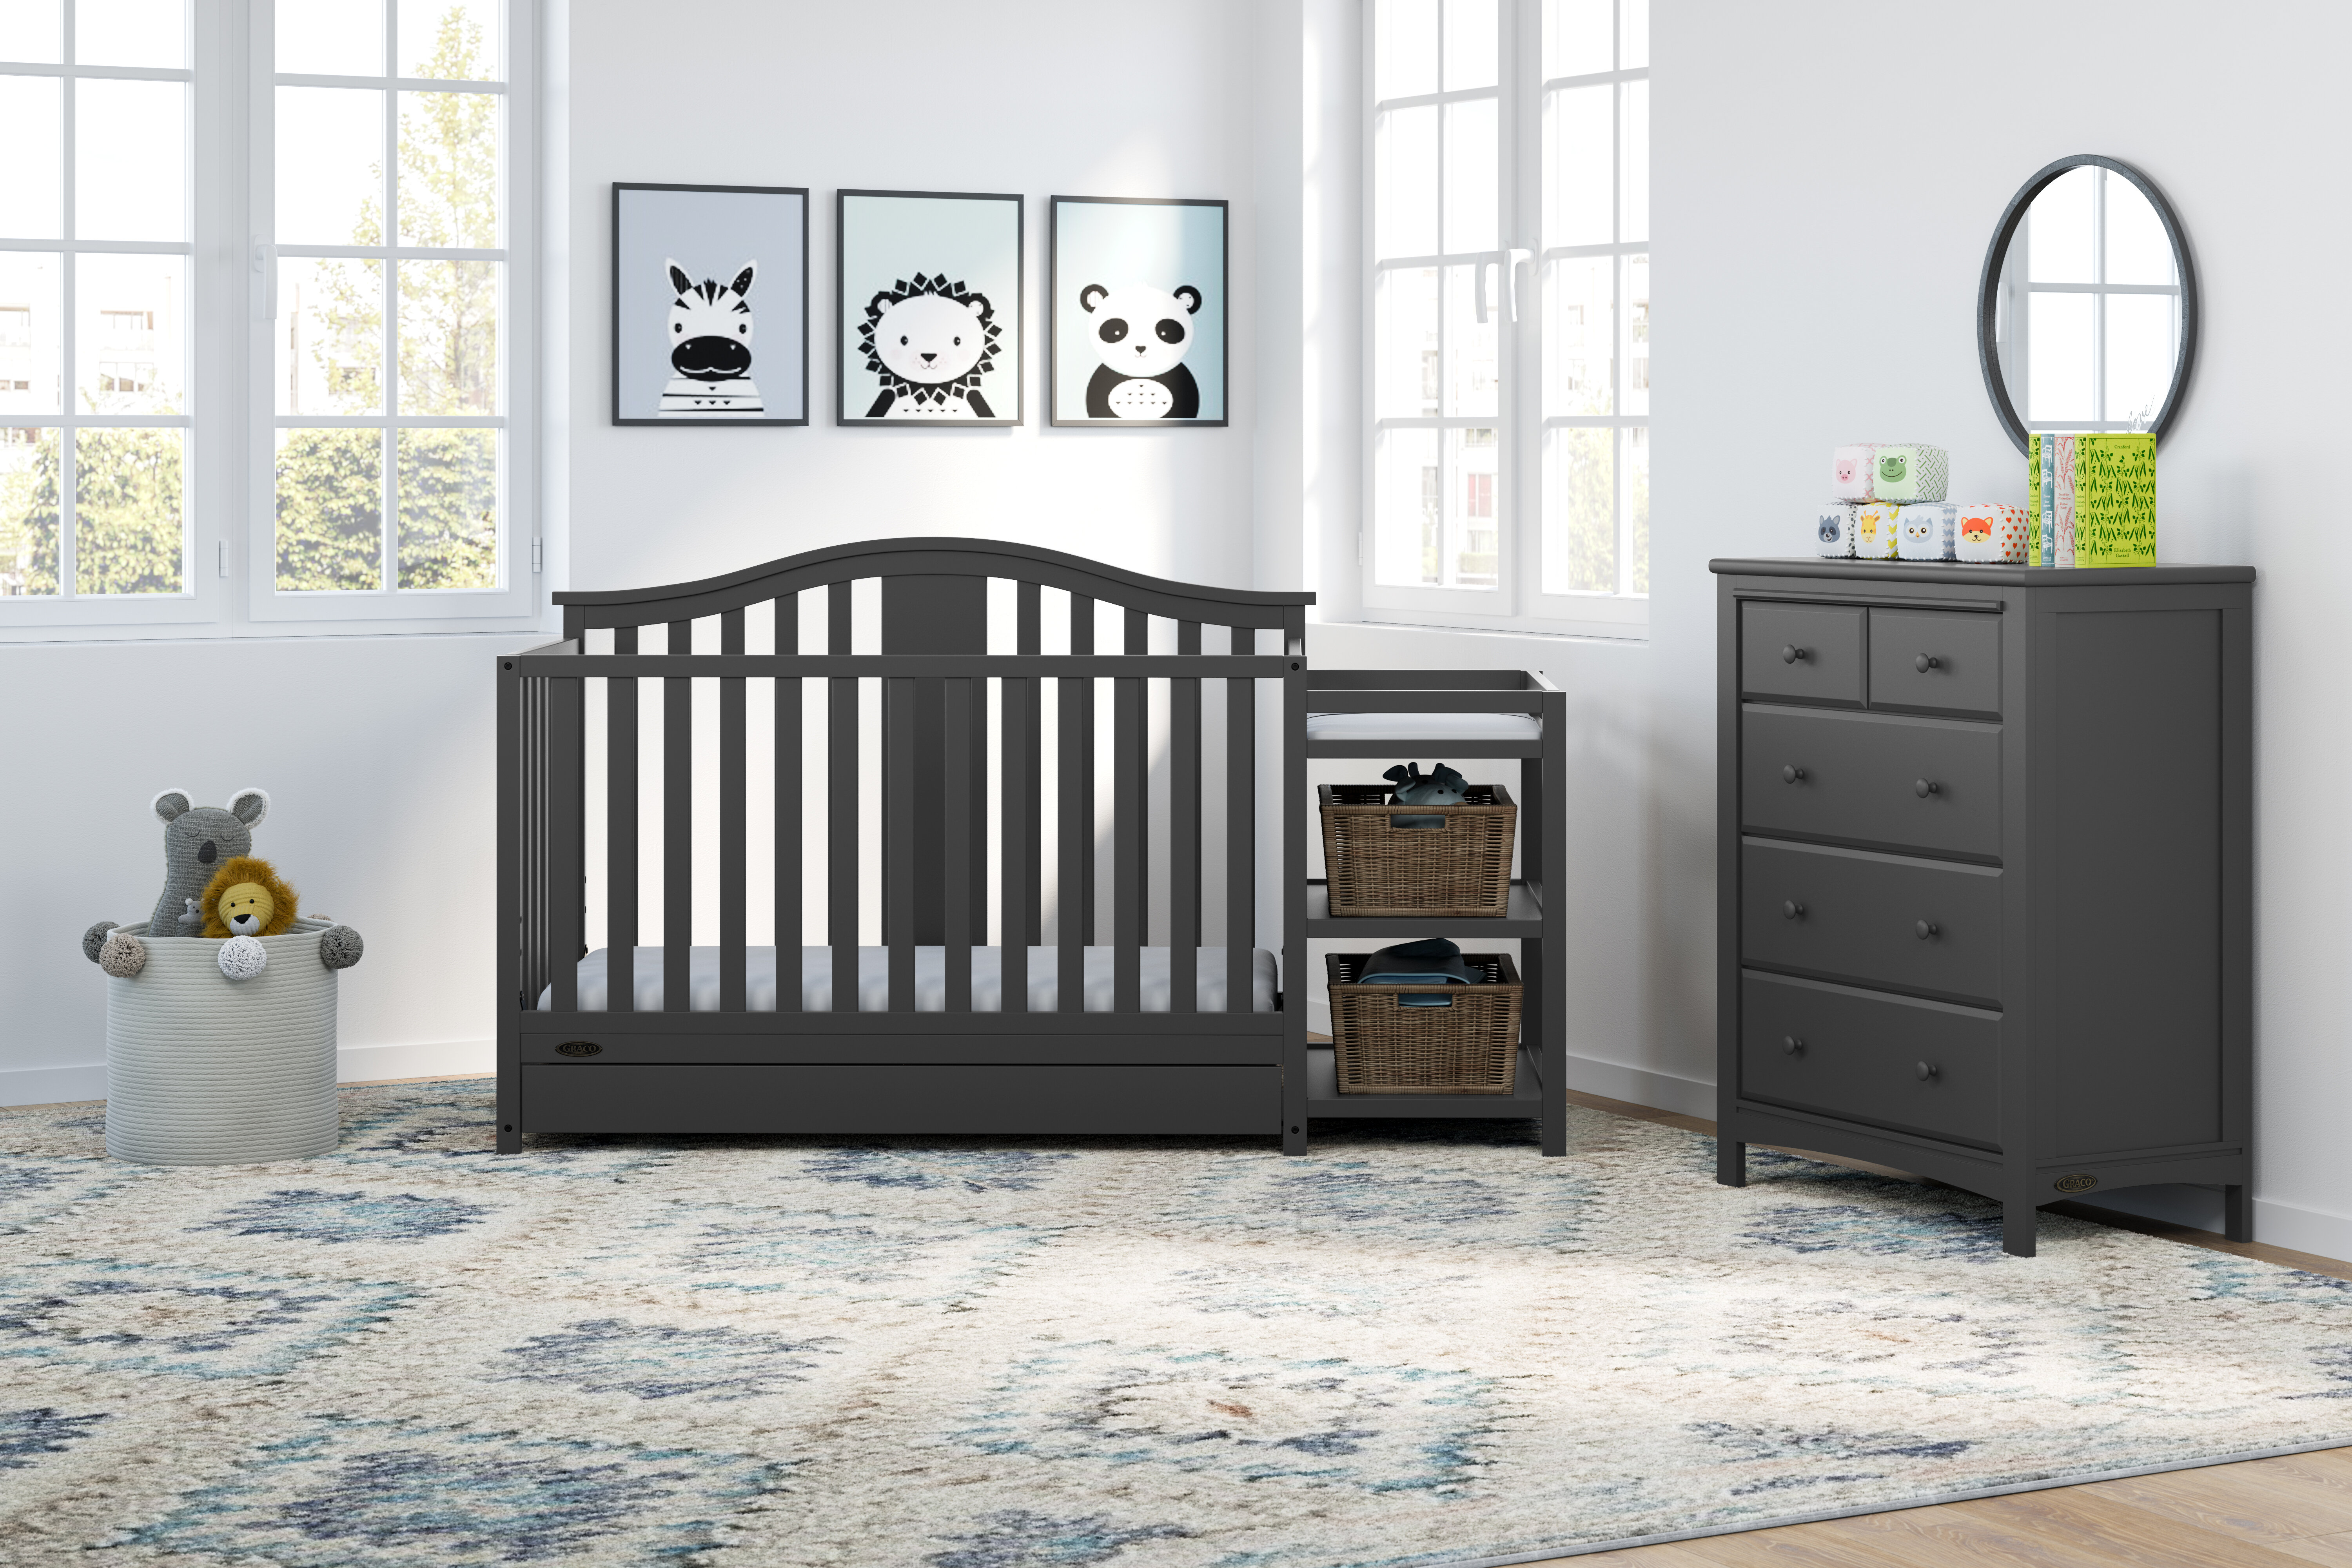 Solano 4 In 1 Convertible Standard Crib And Changer Combo 2 Piece Nursery Furniture Set